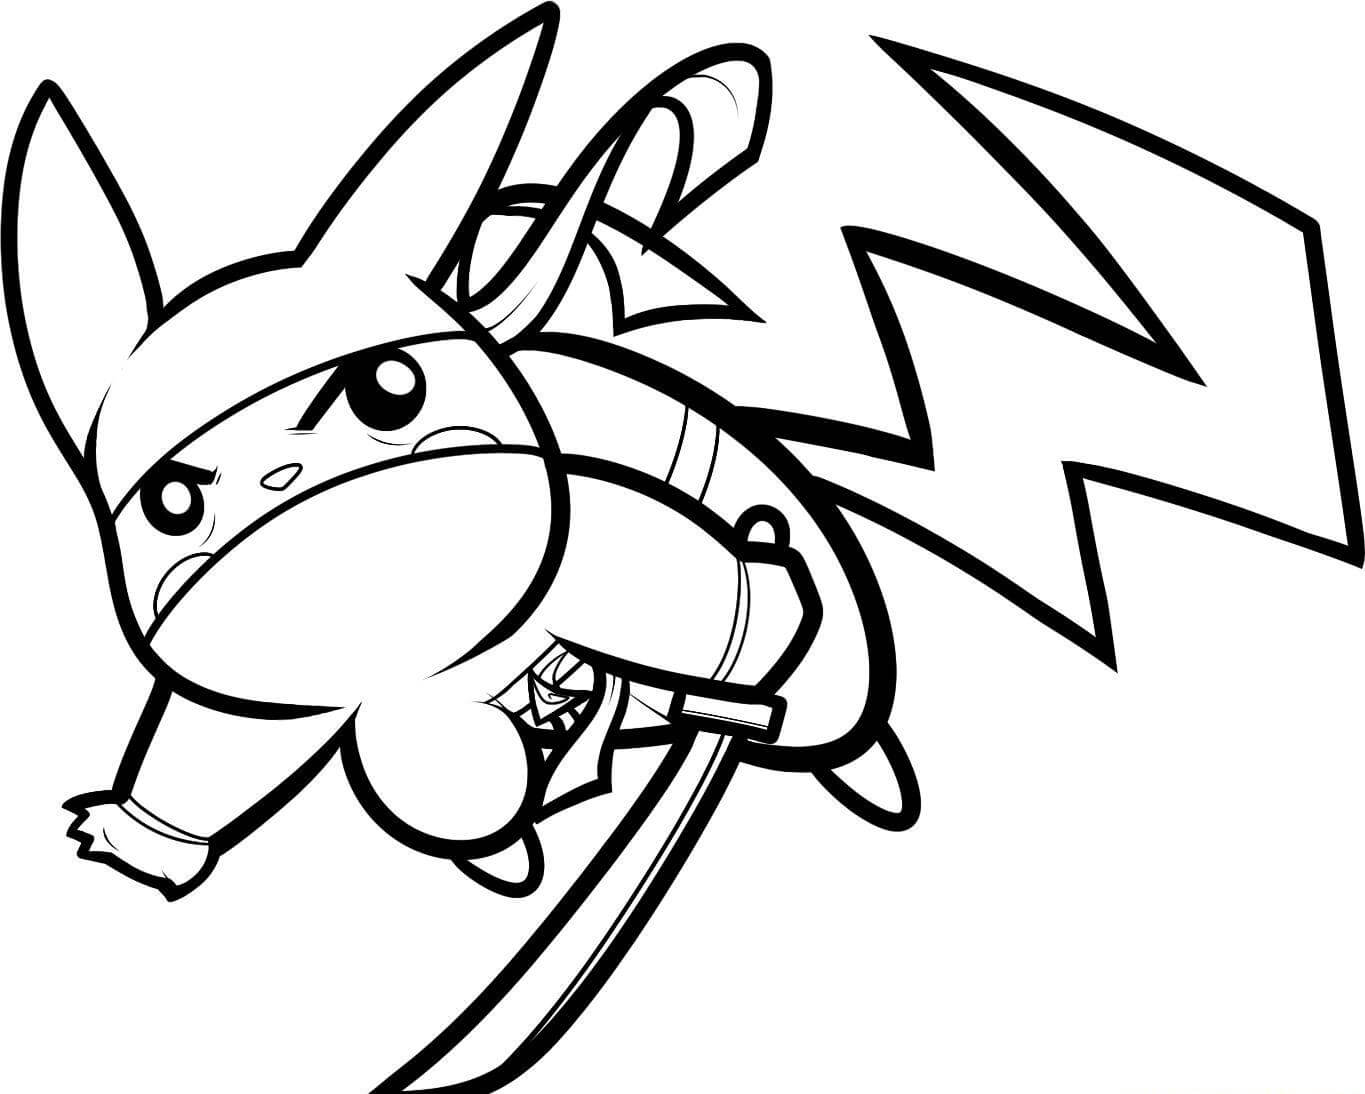 Ninja Pikachu Coloring Page Free Printable Coloring Pages For Kids